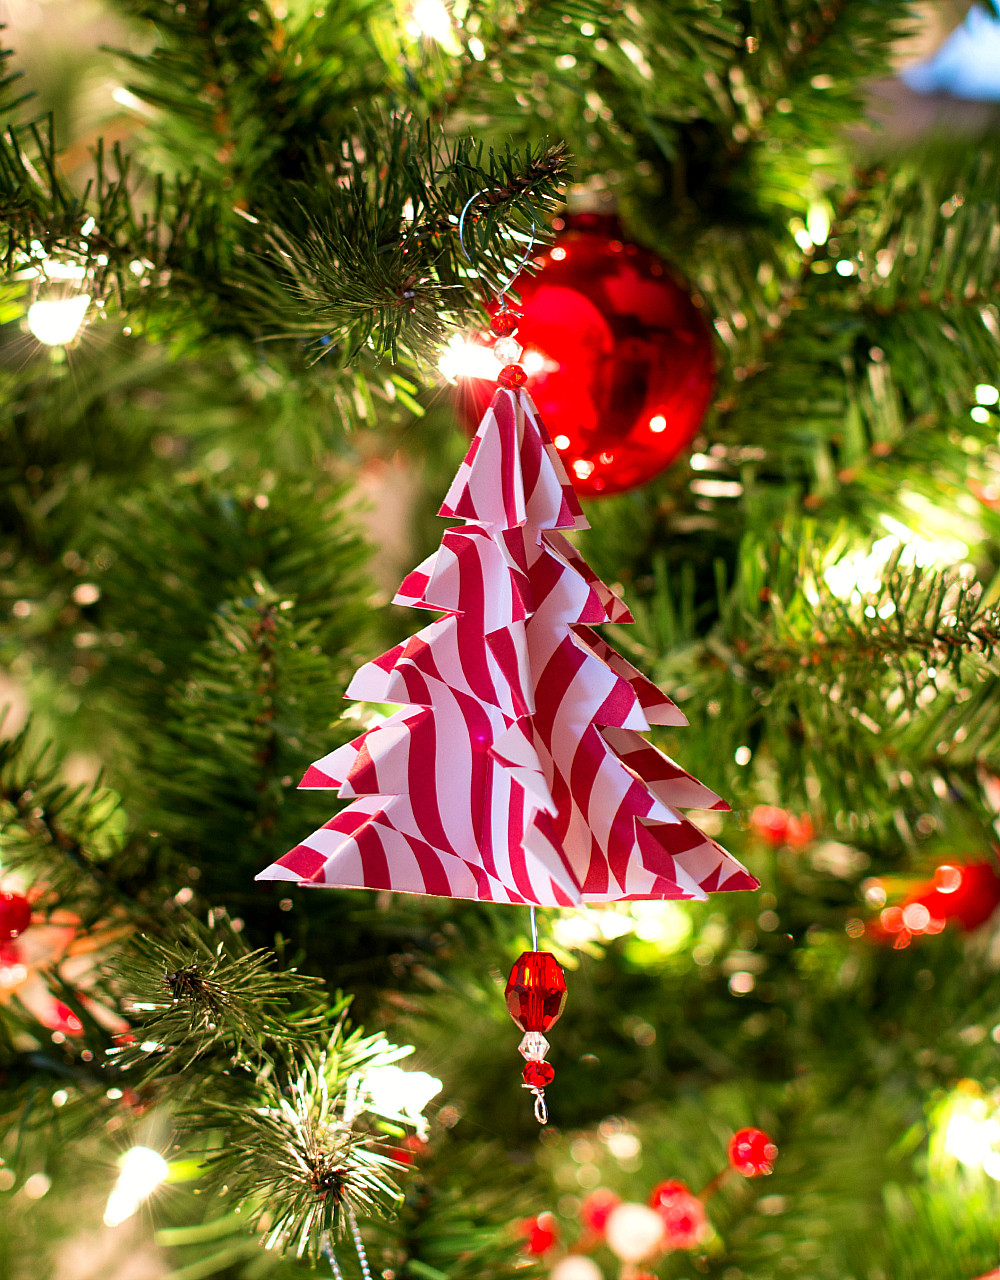 Christmas Tree ornaments New 25 Easy Paper Christmas ornaments You Can Make at Home Of Delightful 42 Pics Christmas Tree ornaments